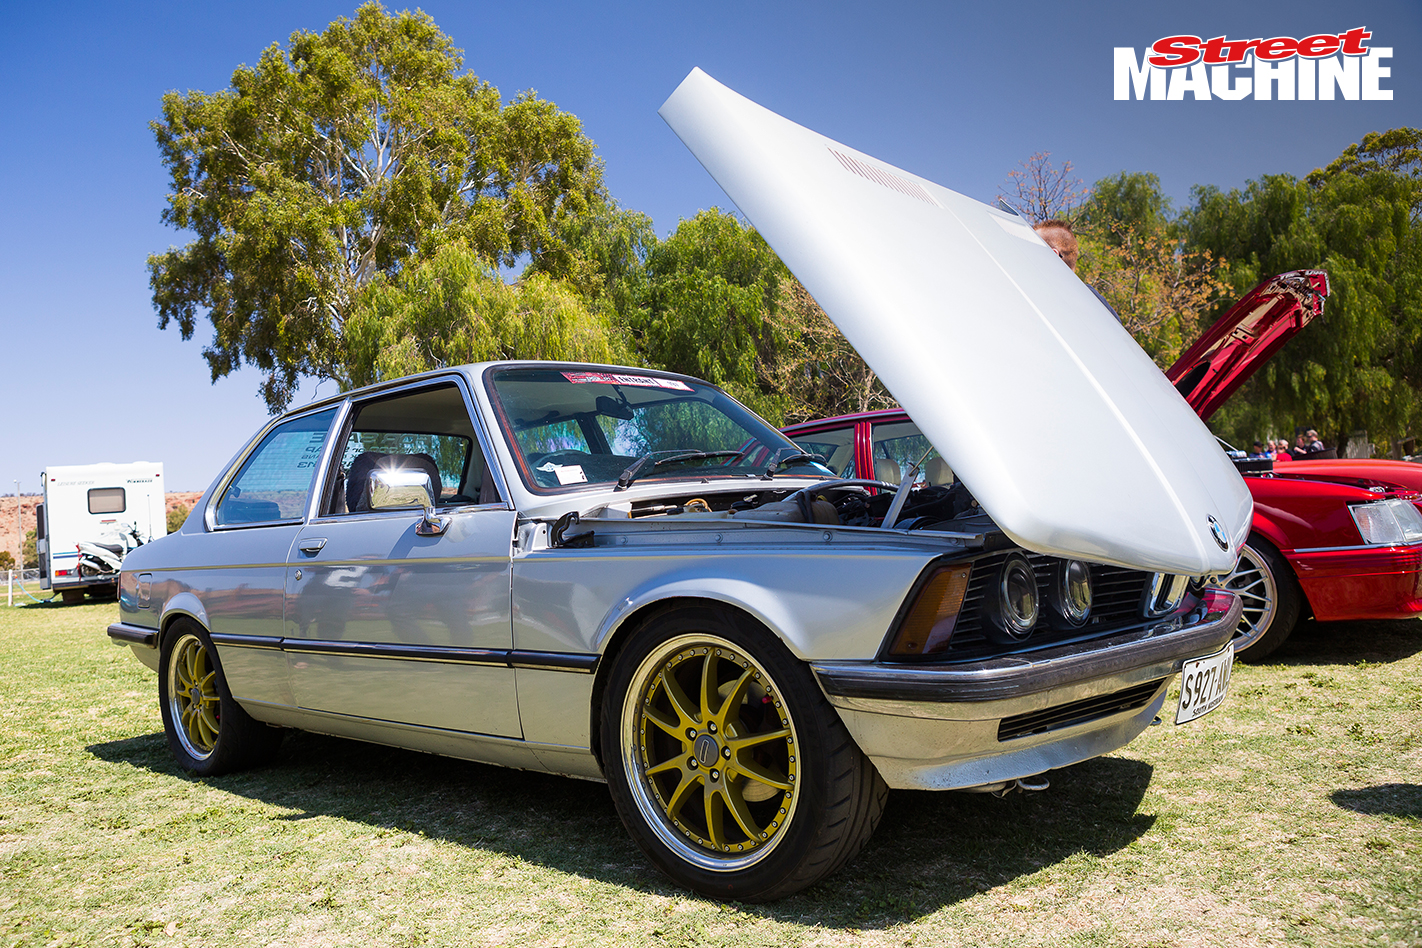 LS1 E30 BMW Nw